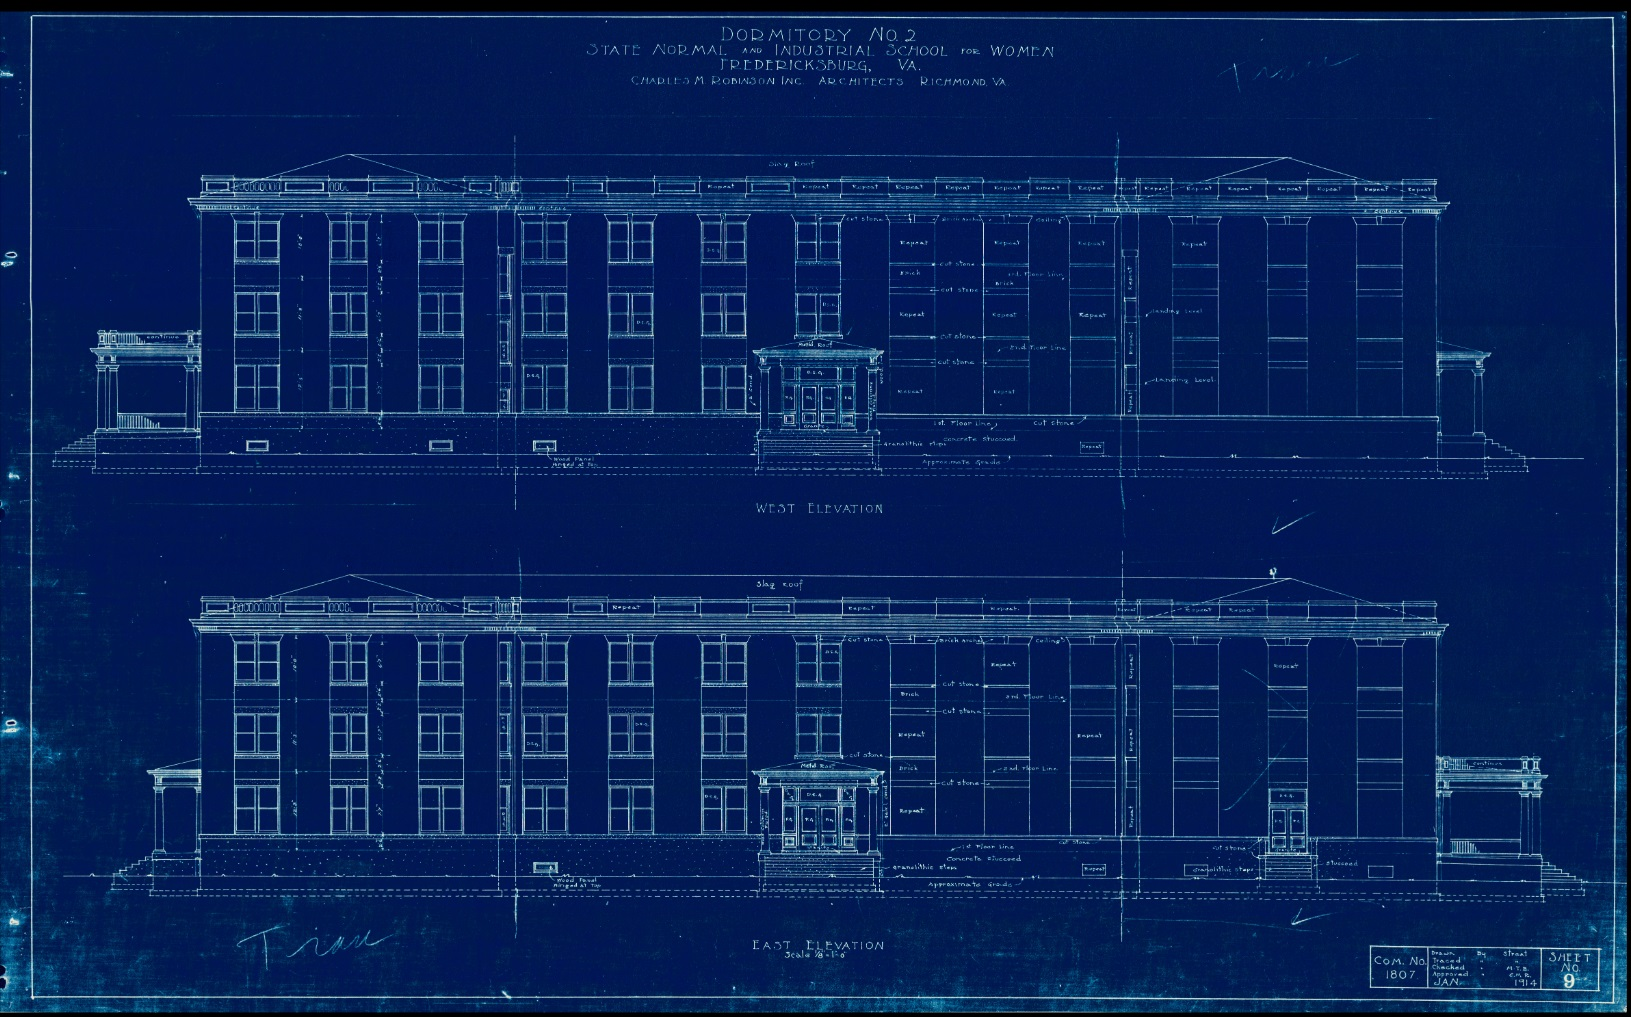 Blueprint of the east and west elevations of Virginia Hall.